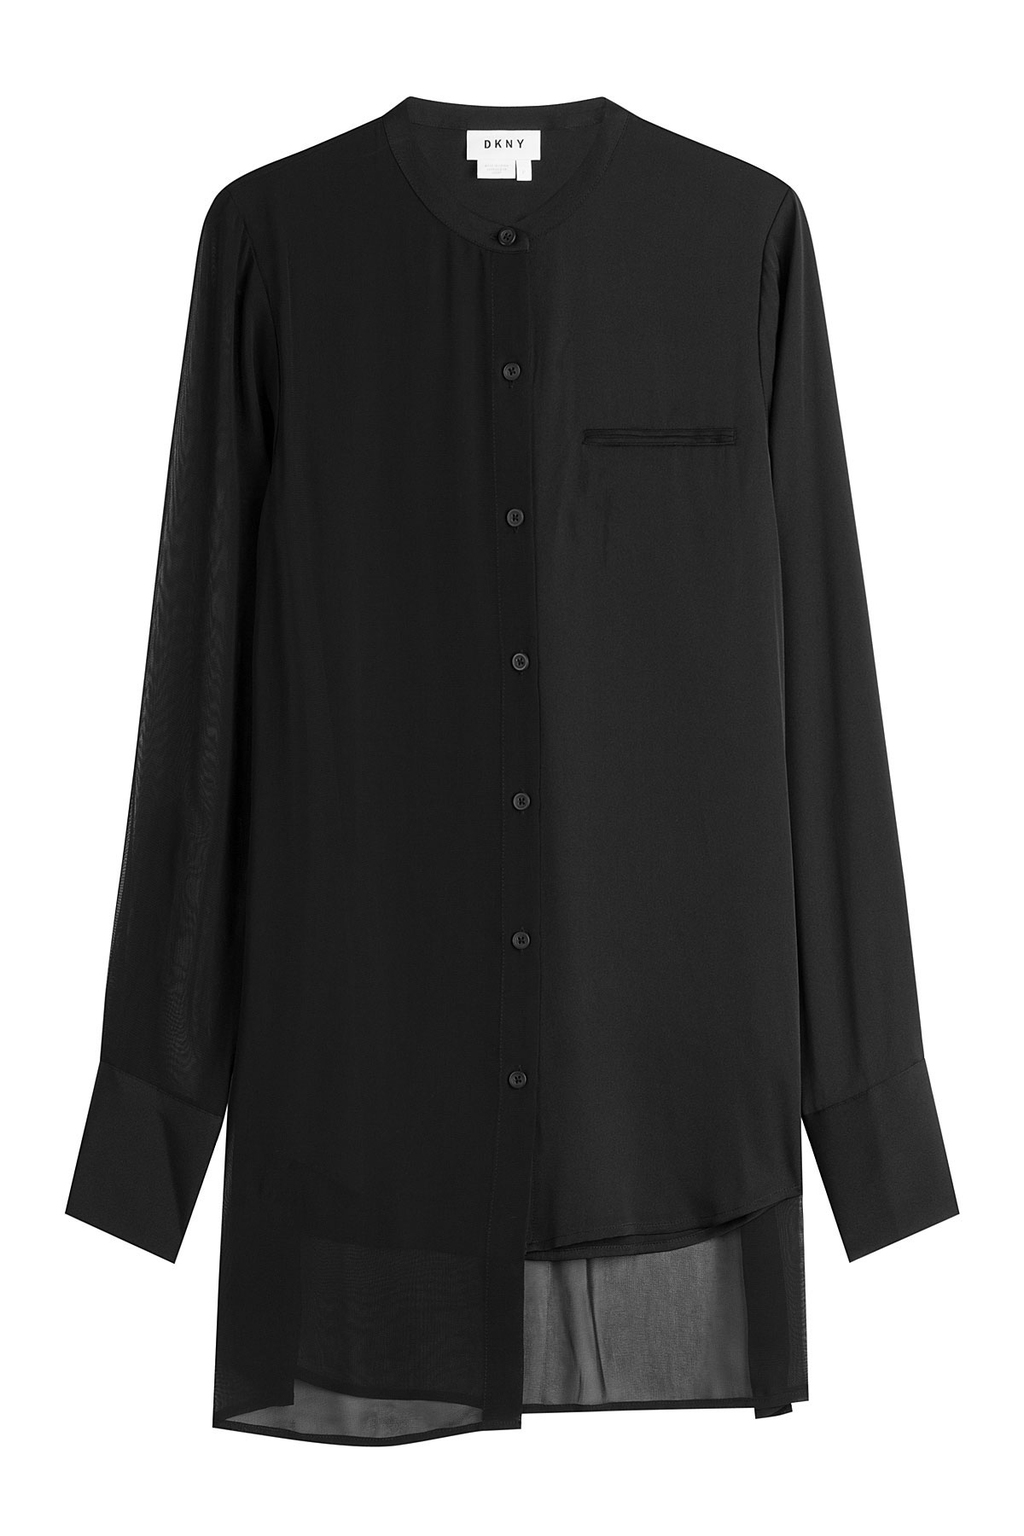 Silk Blouse With Asymmetric Hem - pattern: plain; length: below the bottom; style: blouse; predominant colour: black; occasions: evening; fibres: silk - 100%; fit: loose; neckline: crew; sleeve length: long sleeve; sleeve style: standard; texture group: silky - light; pattern type: fabric; season: a/w 2016; wardrobe: event